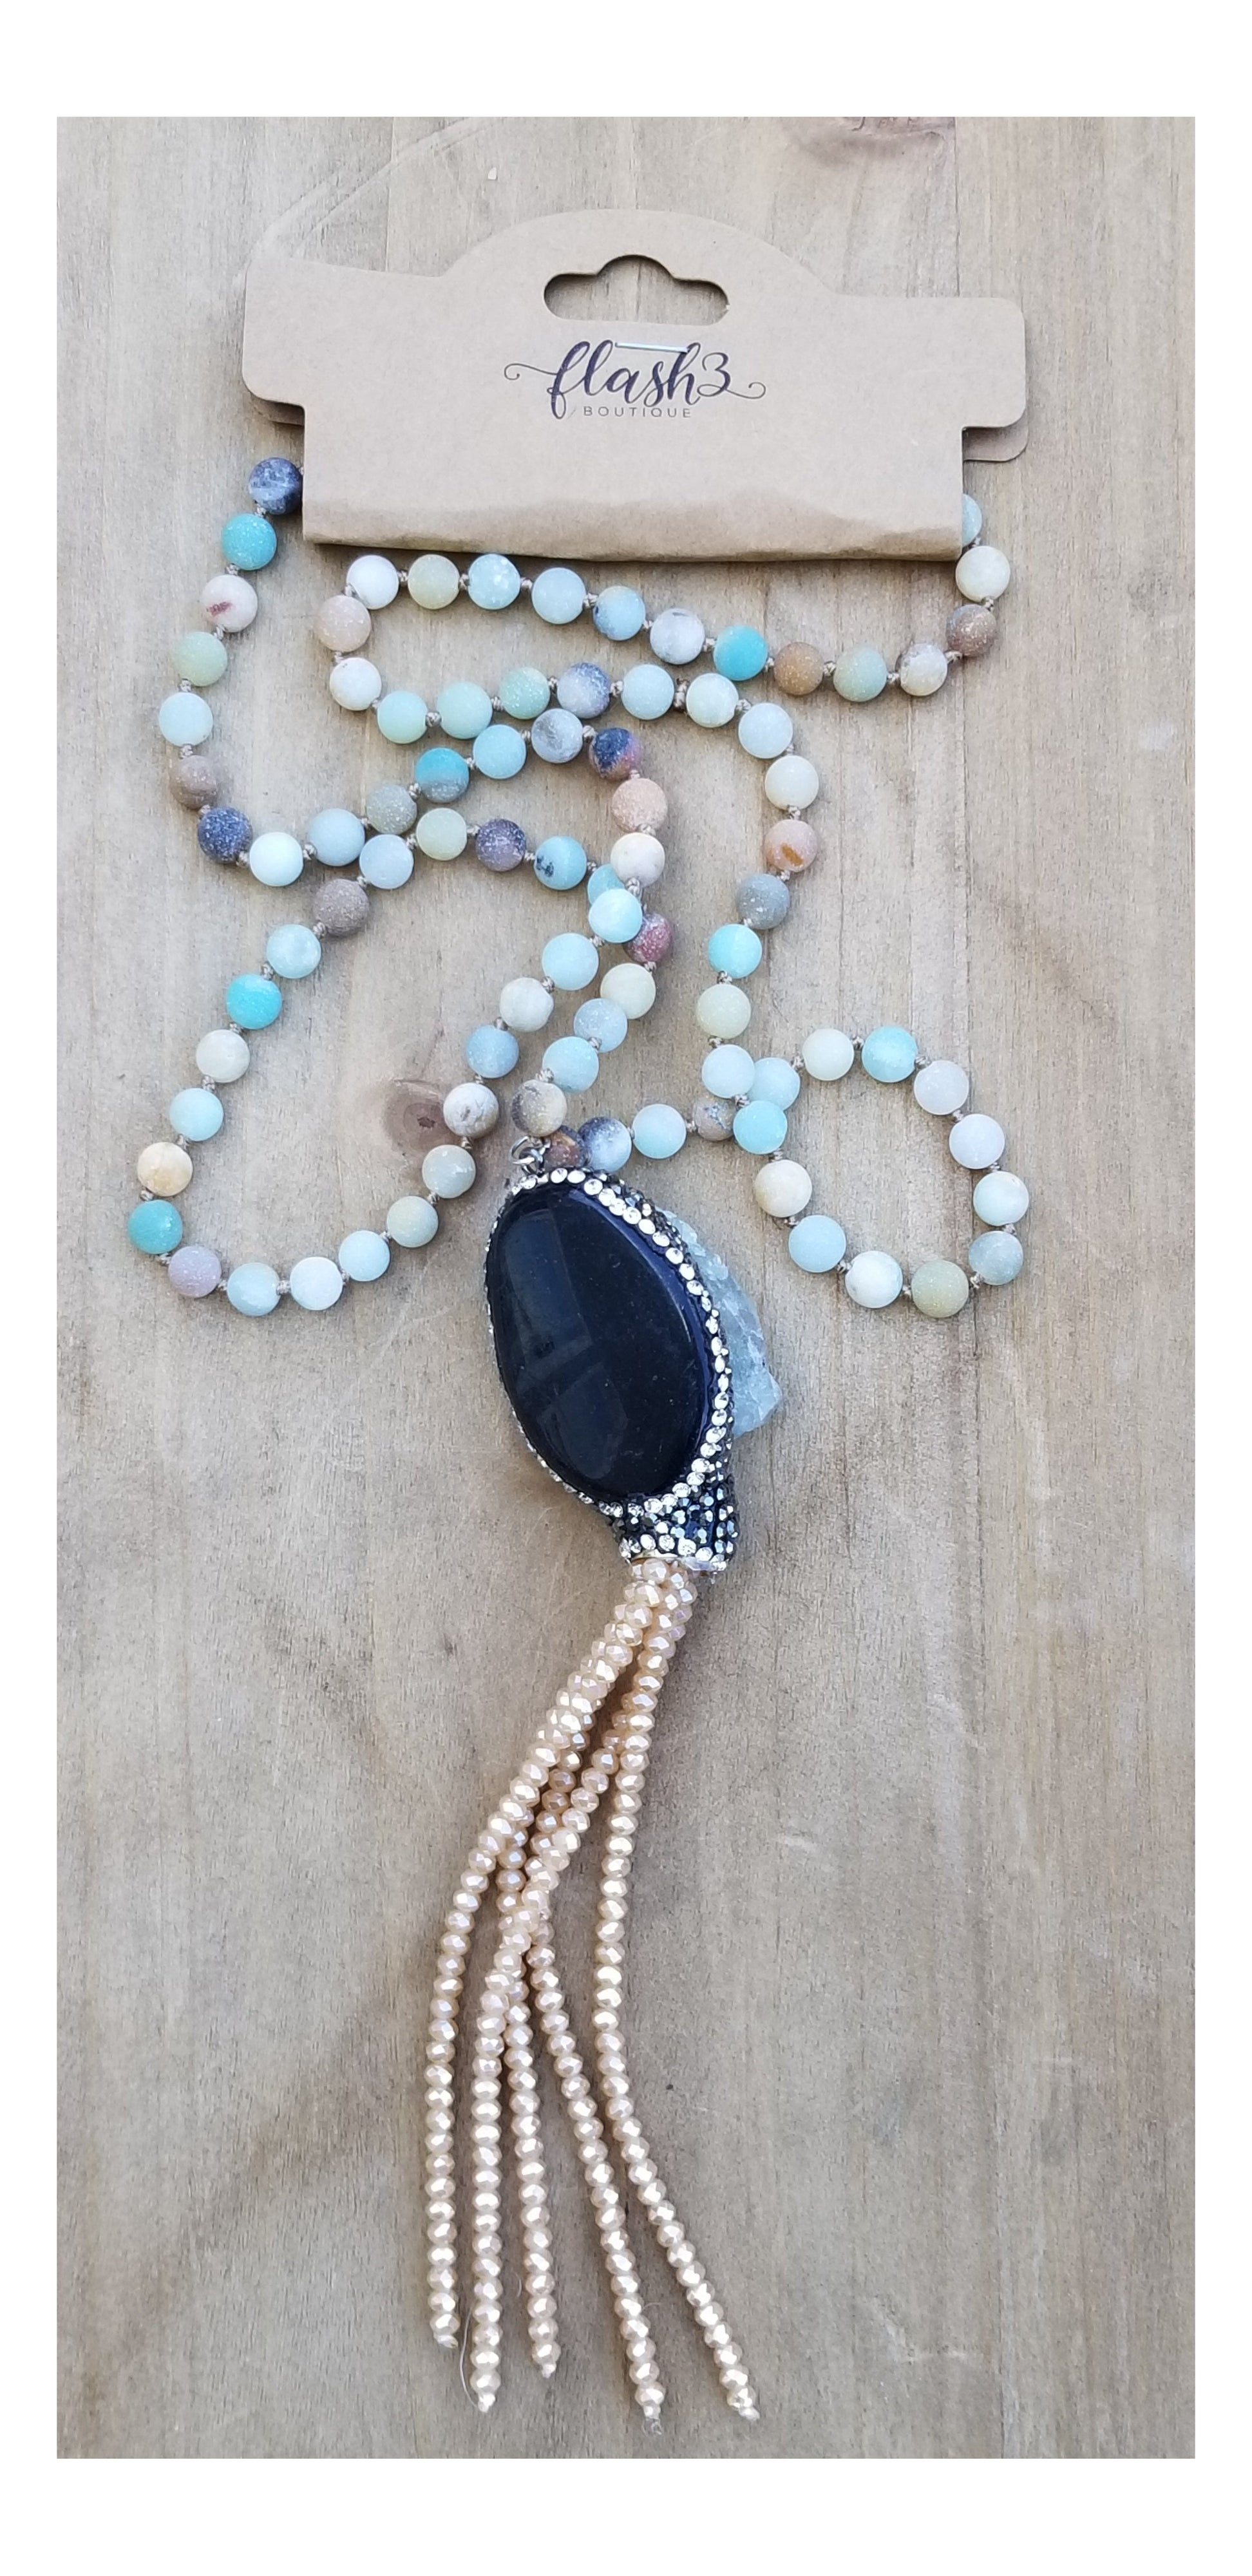 Natural Amazonite - Flash3 Boutique